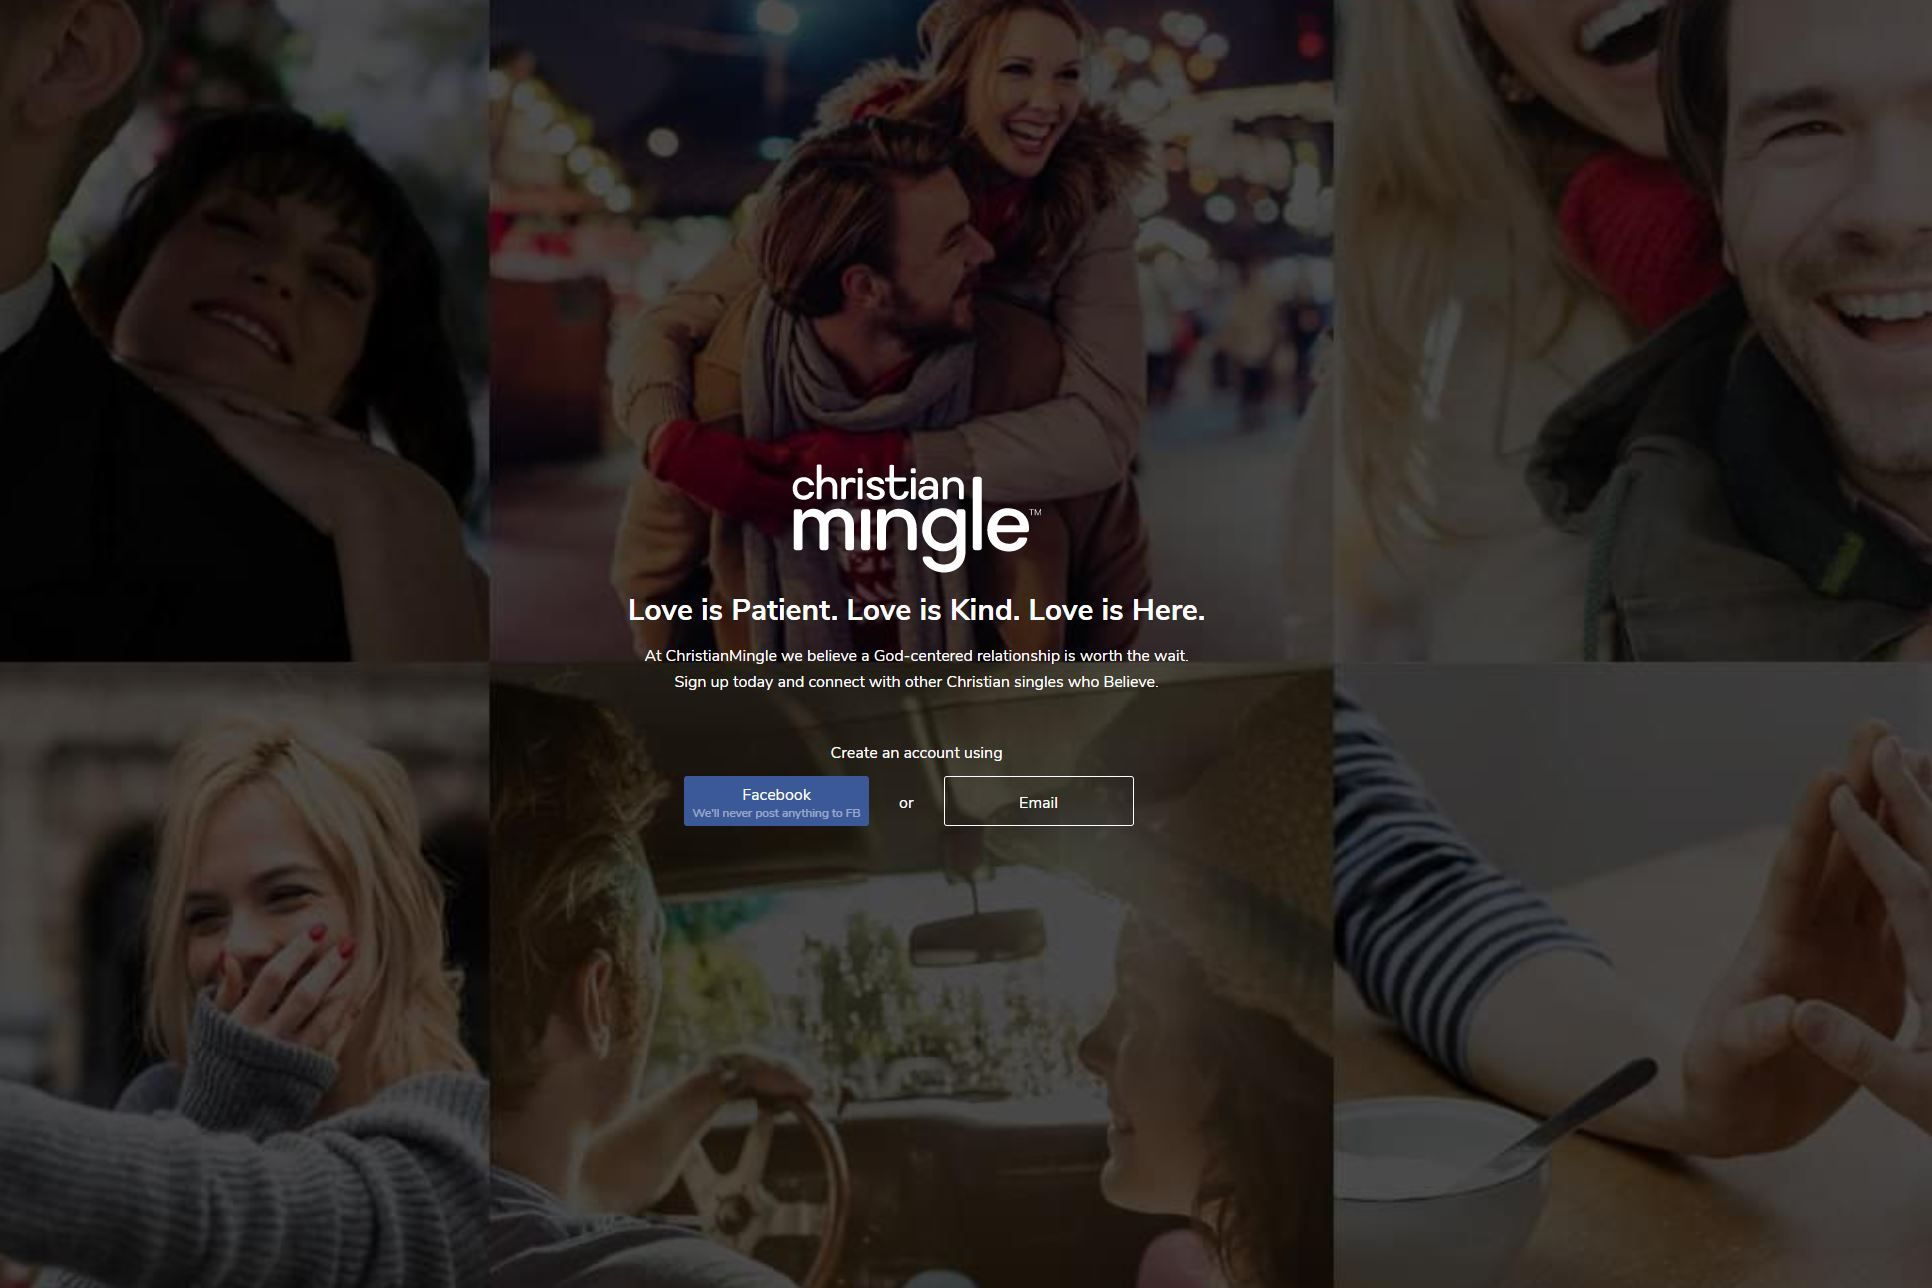 Christian mingle com Mitglied Login